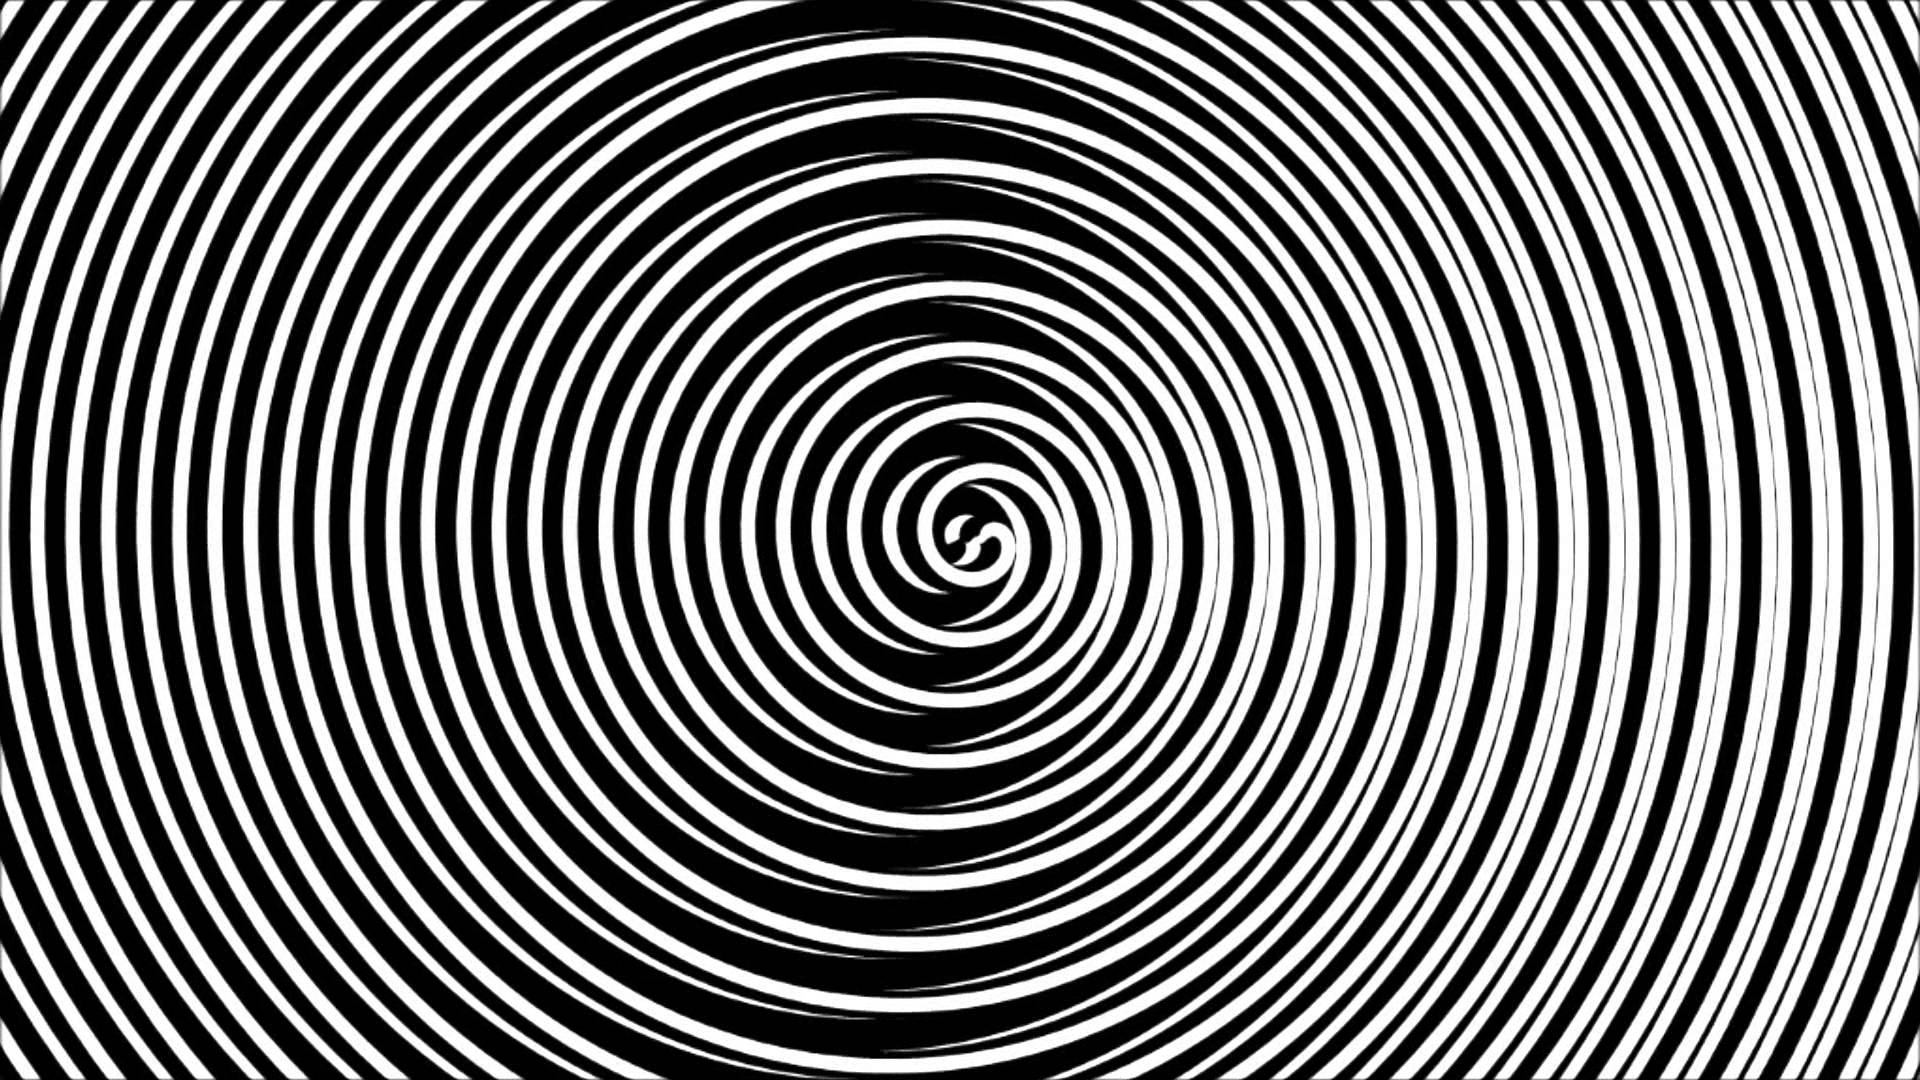 Images of Hypnosis | 1920x1080